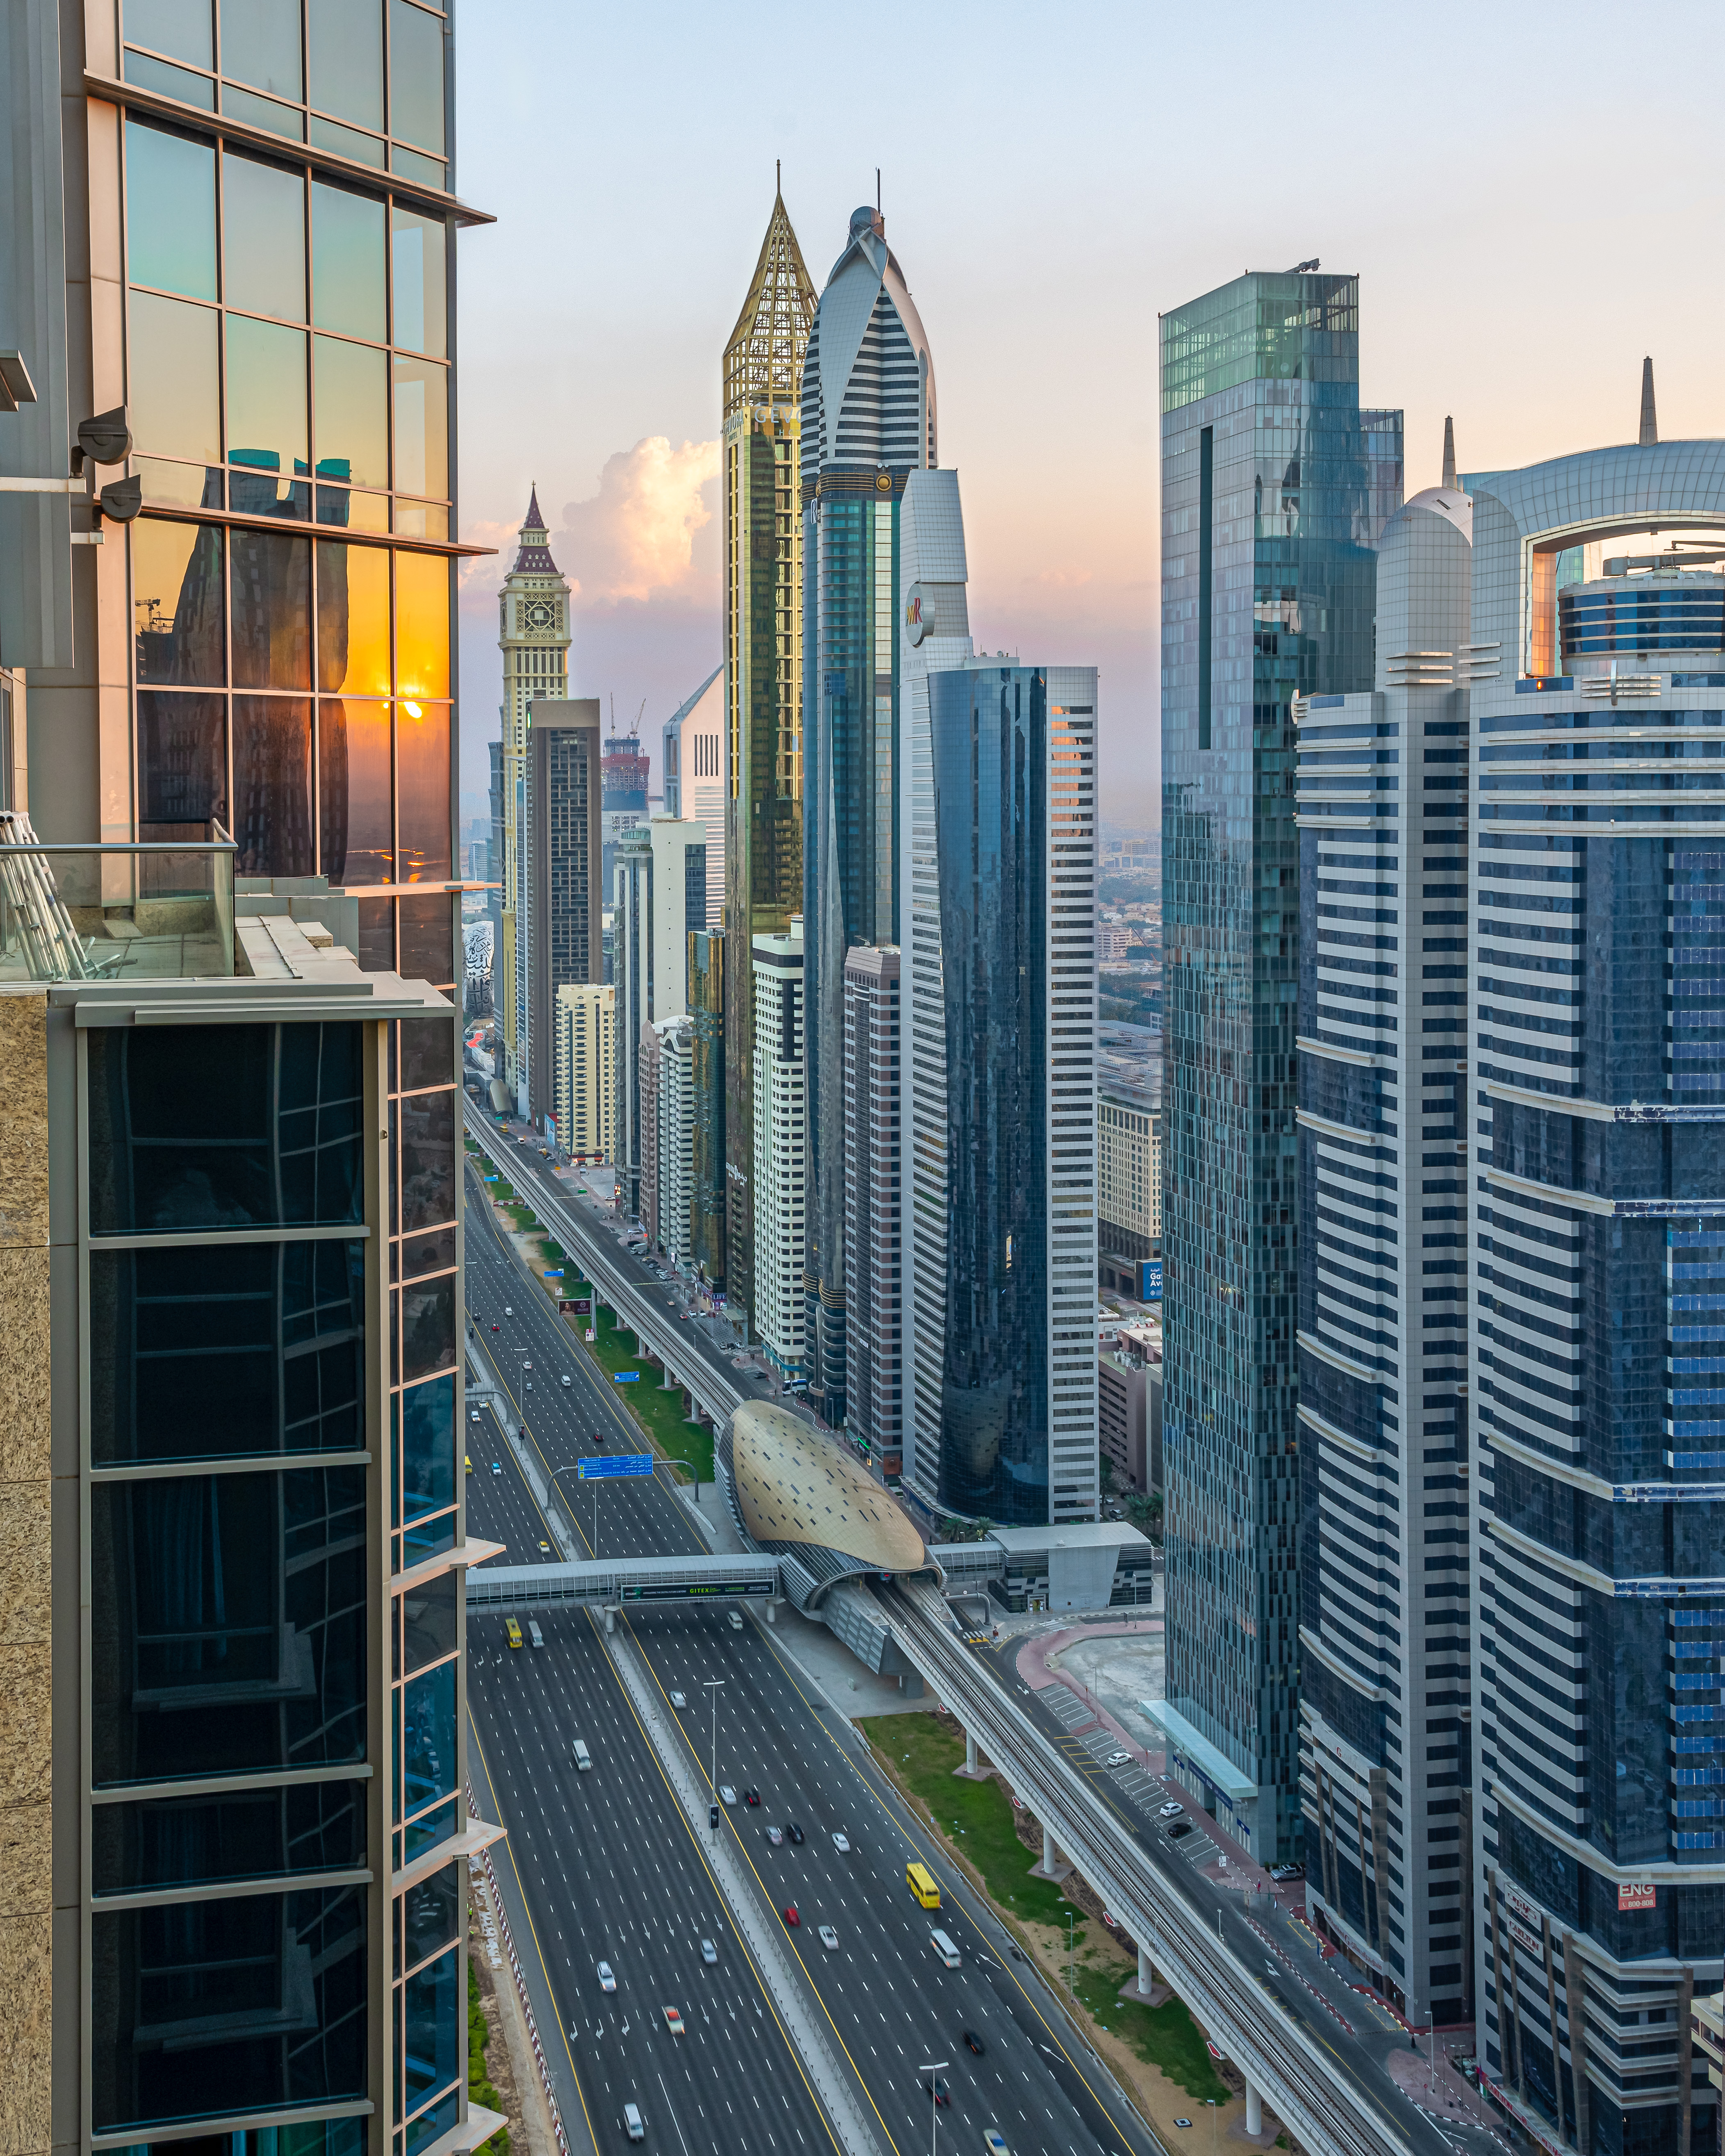 Looking North up Sheikh Zayed Rd from Shangri-La